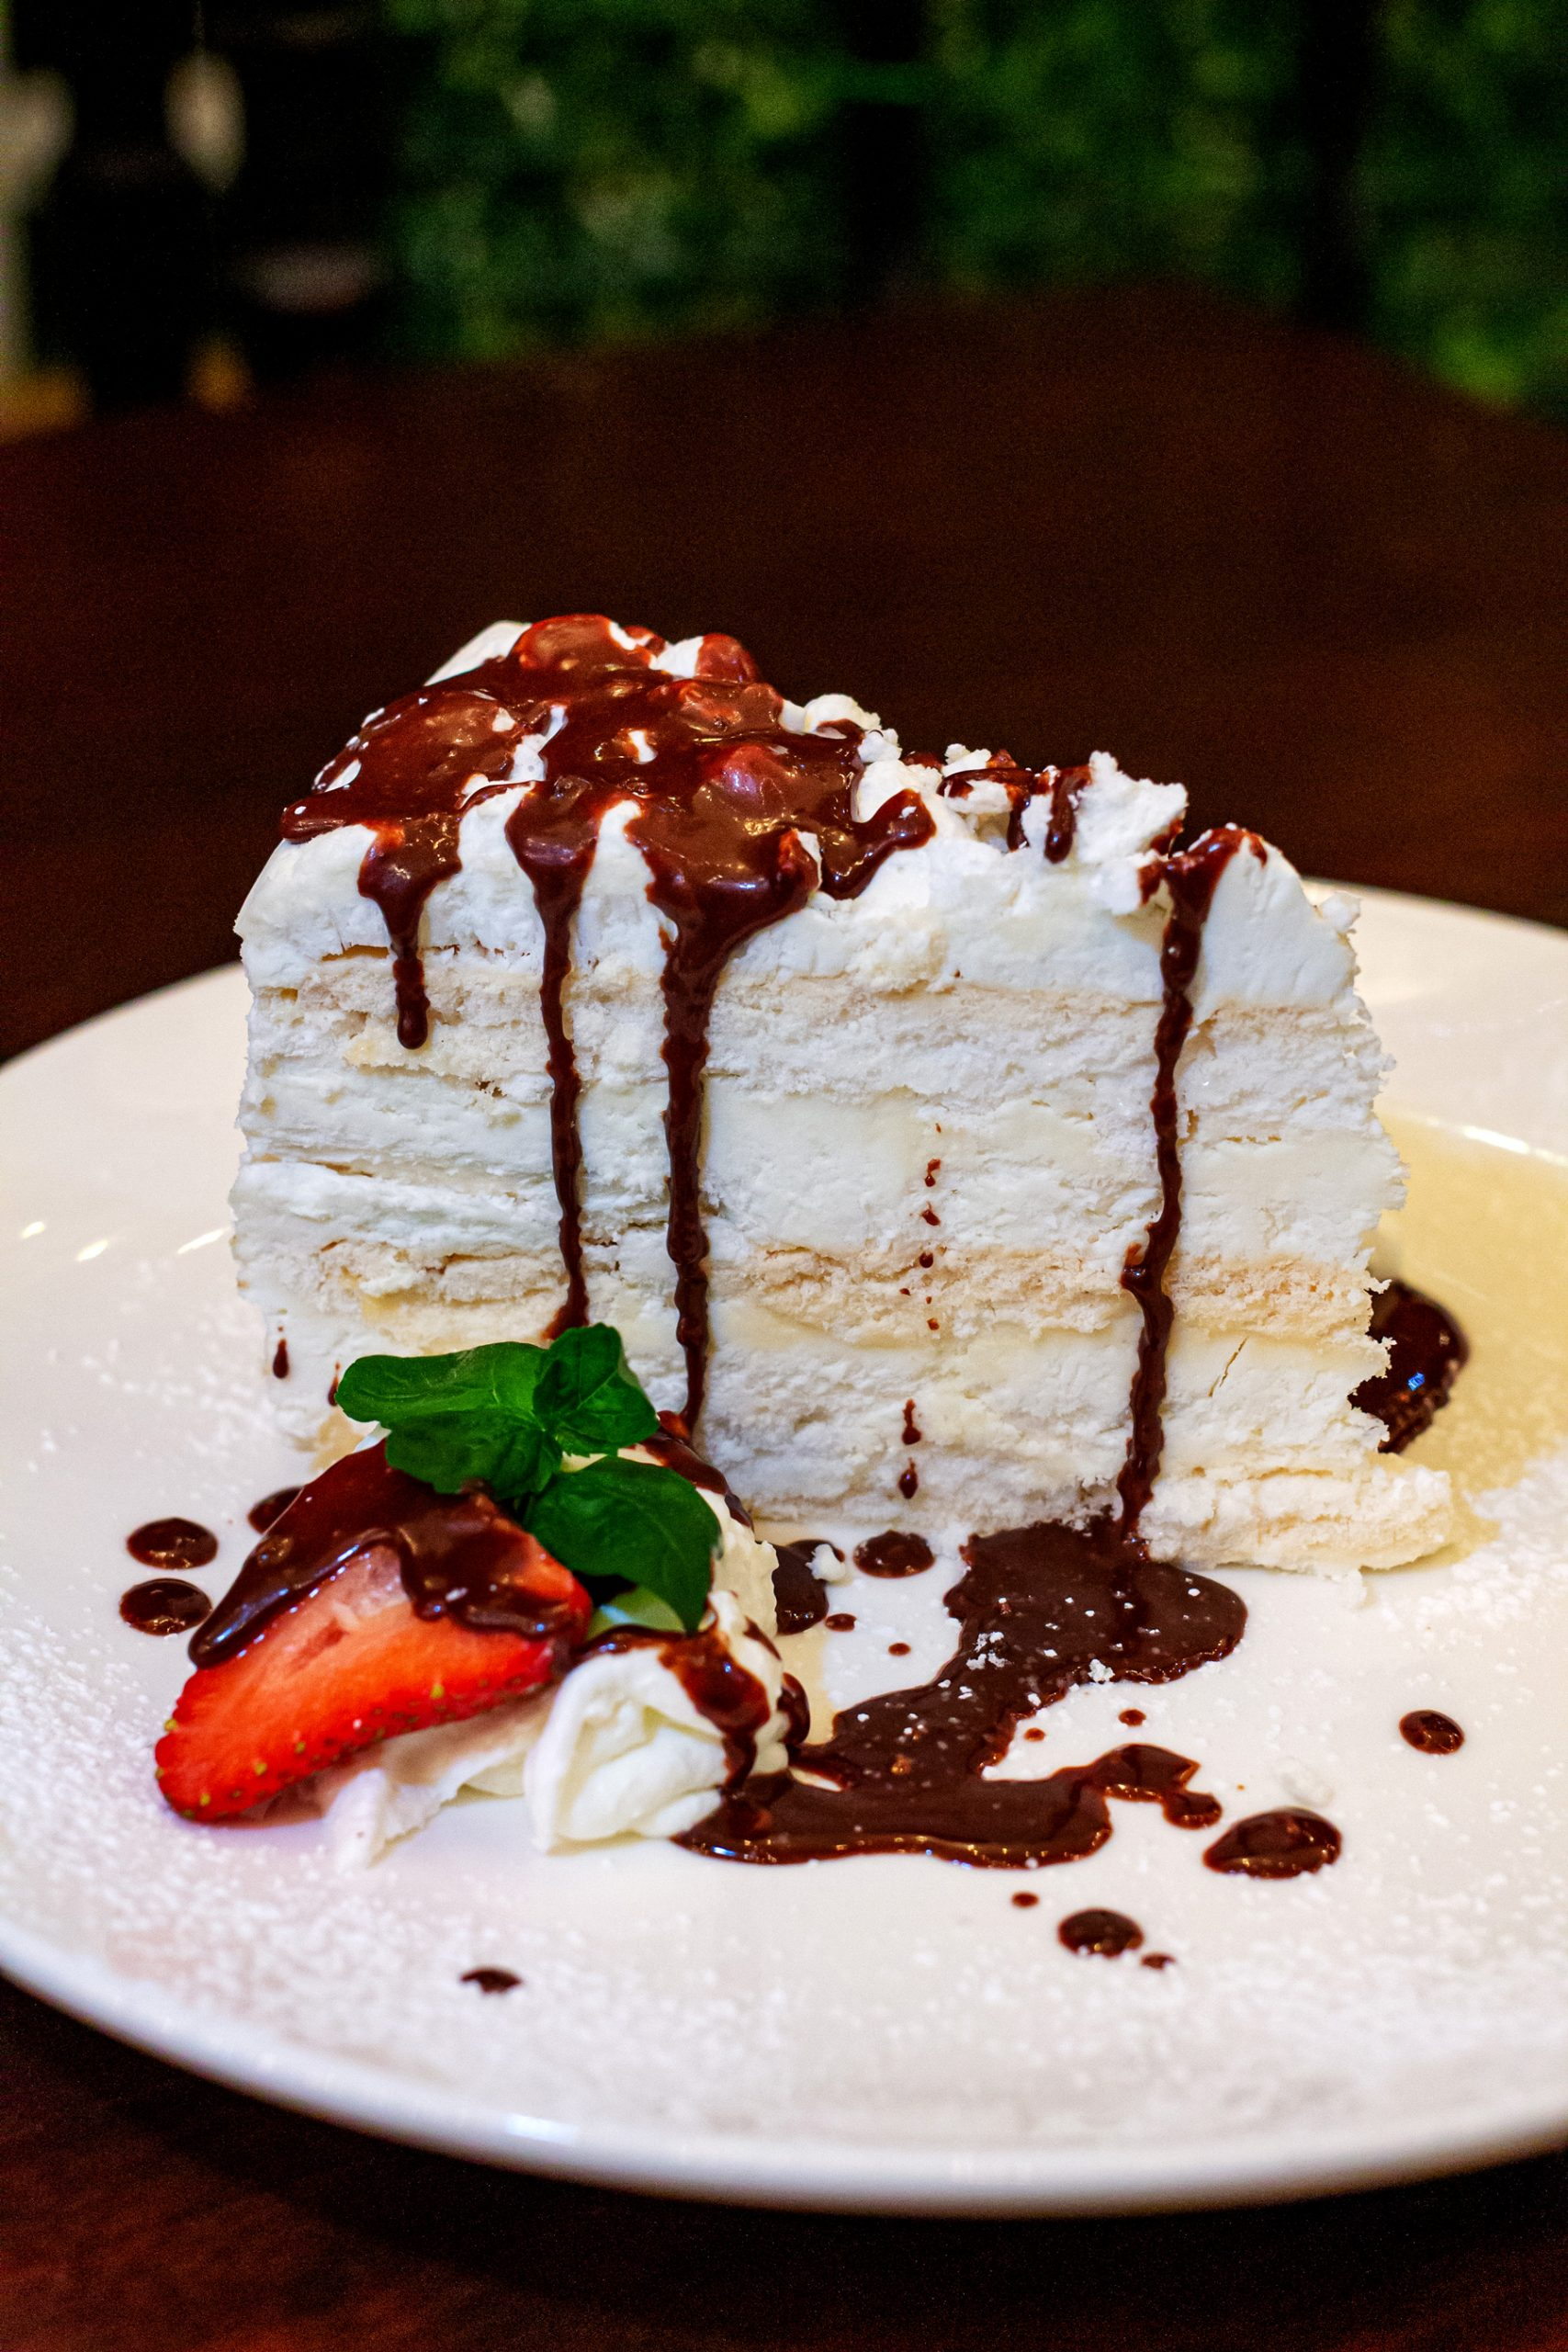 Meringue and vanilla ice cream cake drizzled with chocolate sauce on a white plate.